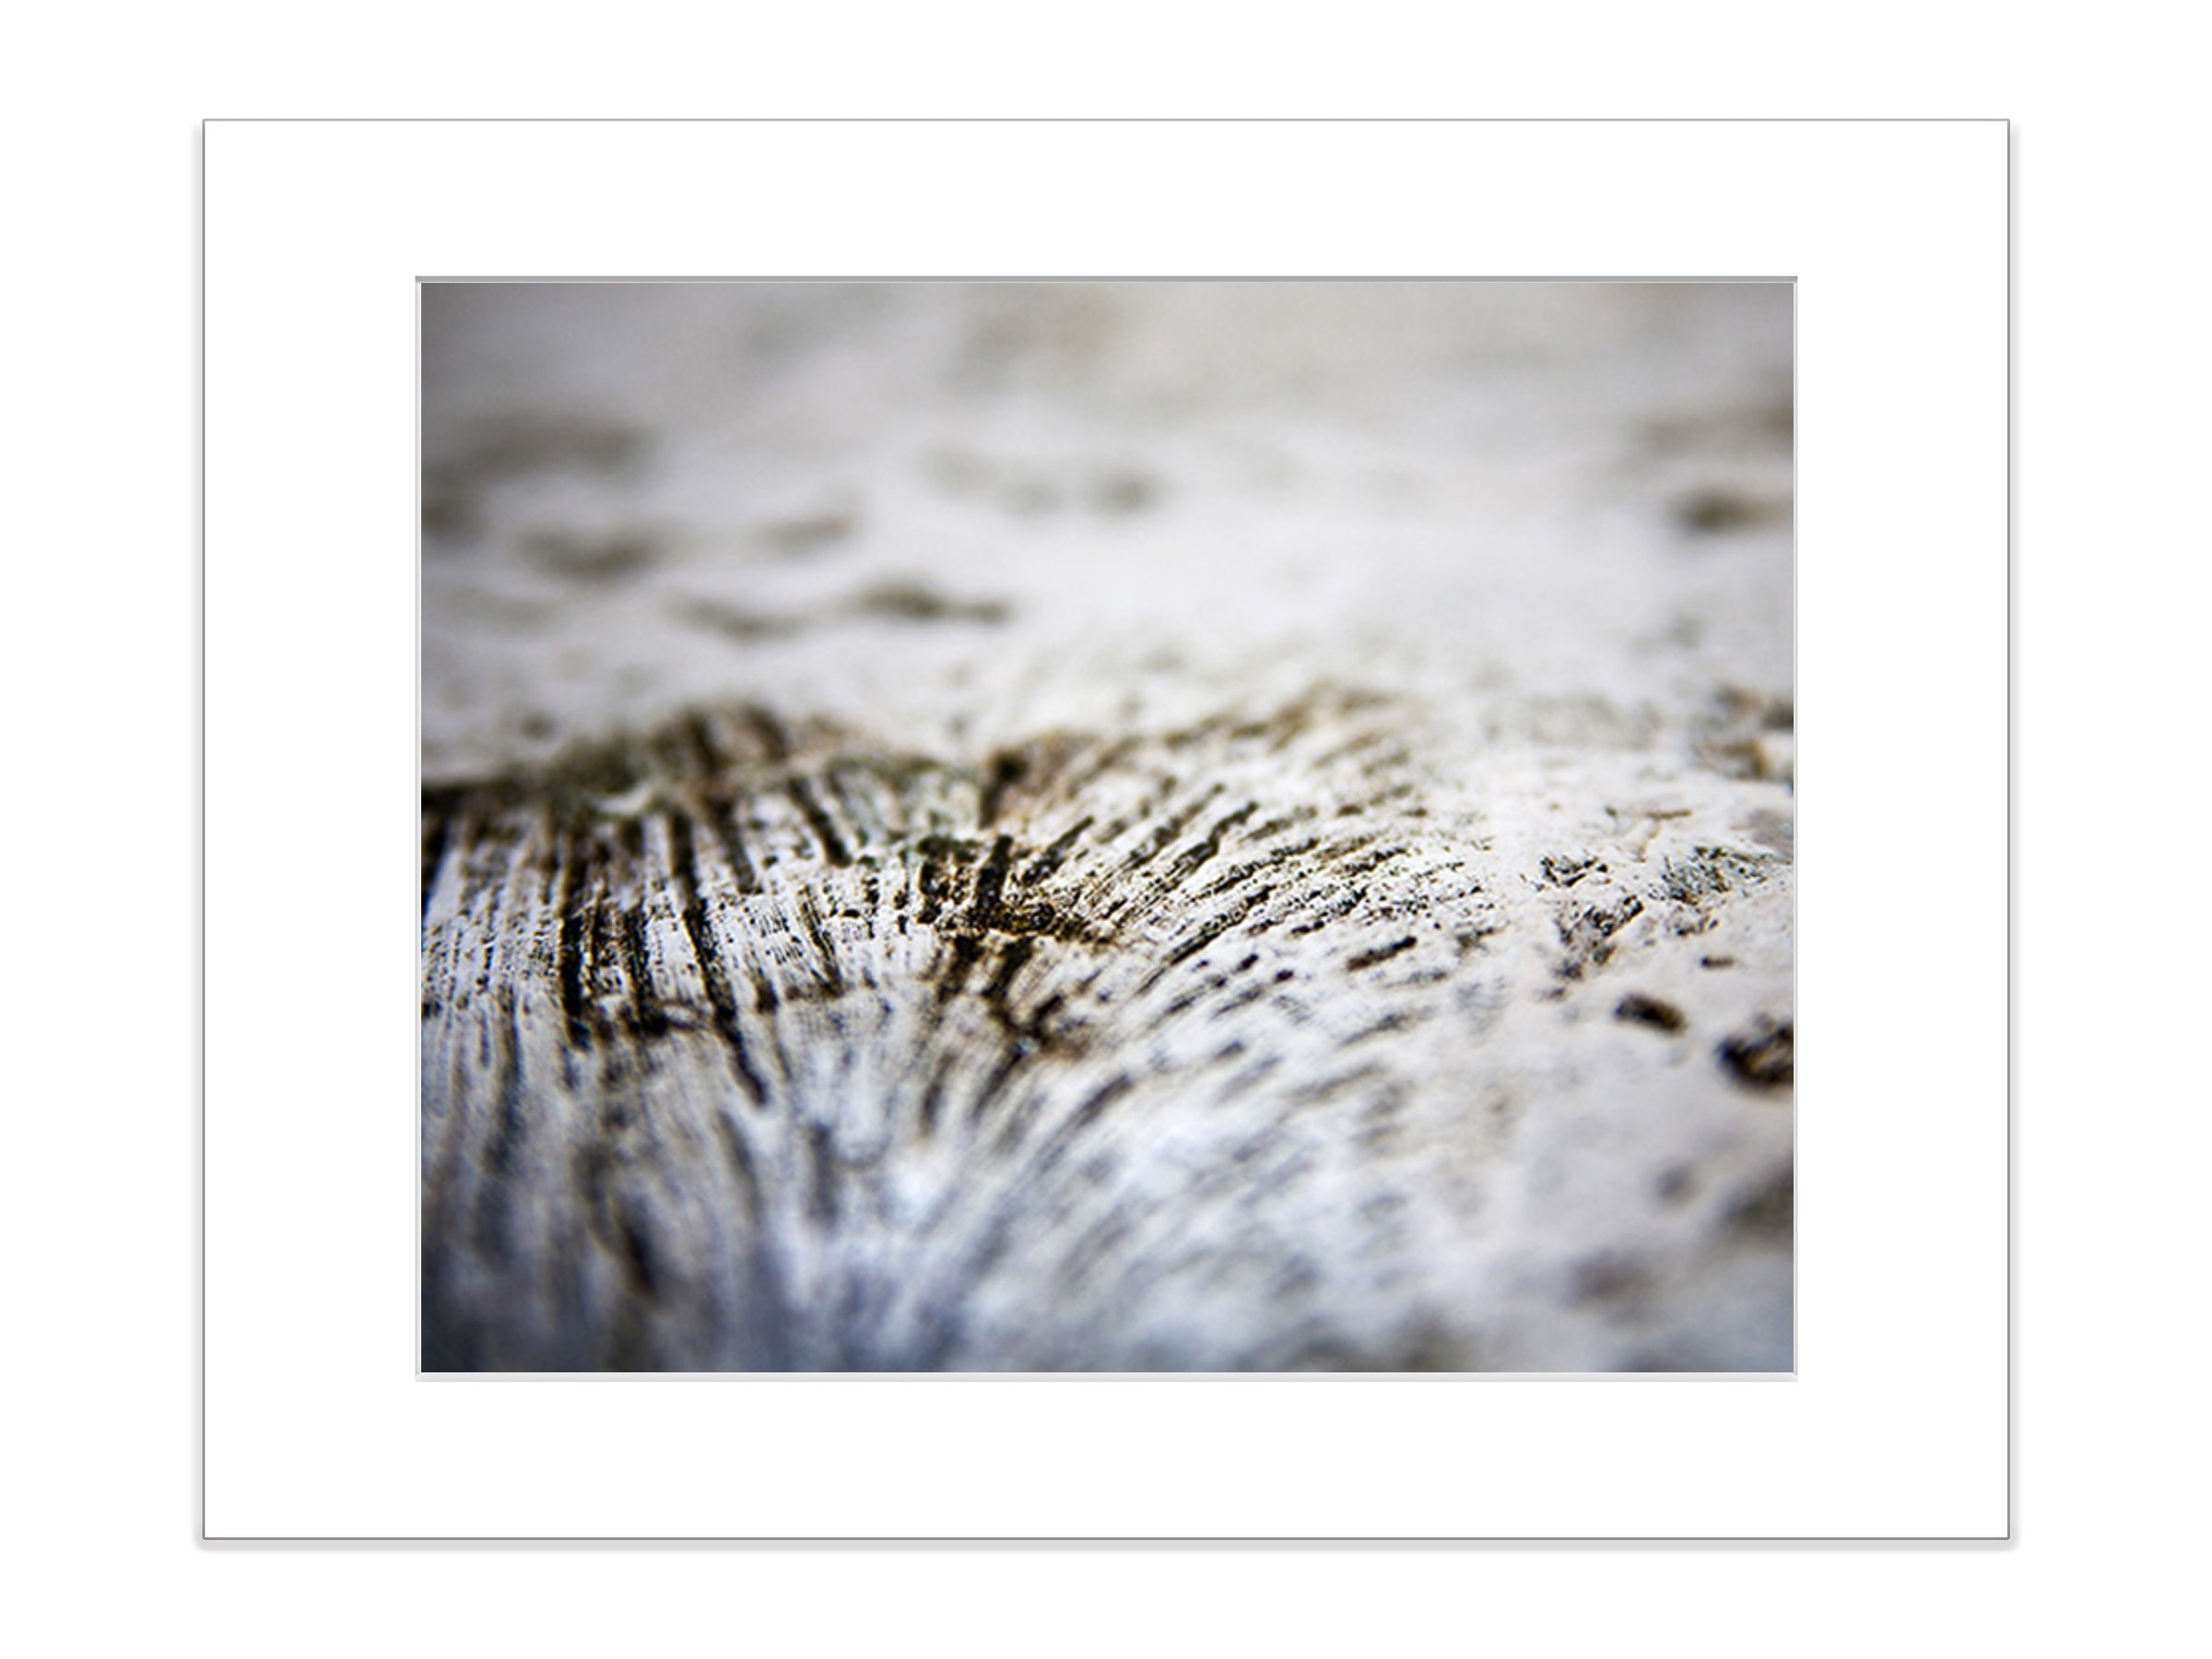 Coral Beach Photography 5x7 Inch Matted Photo Art Print Abstract Marine Life